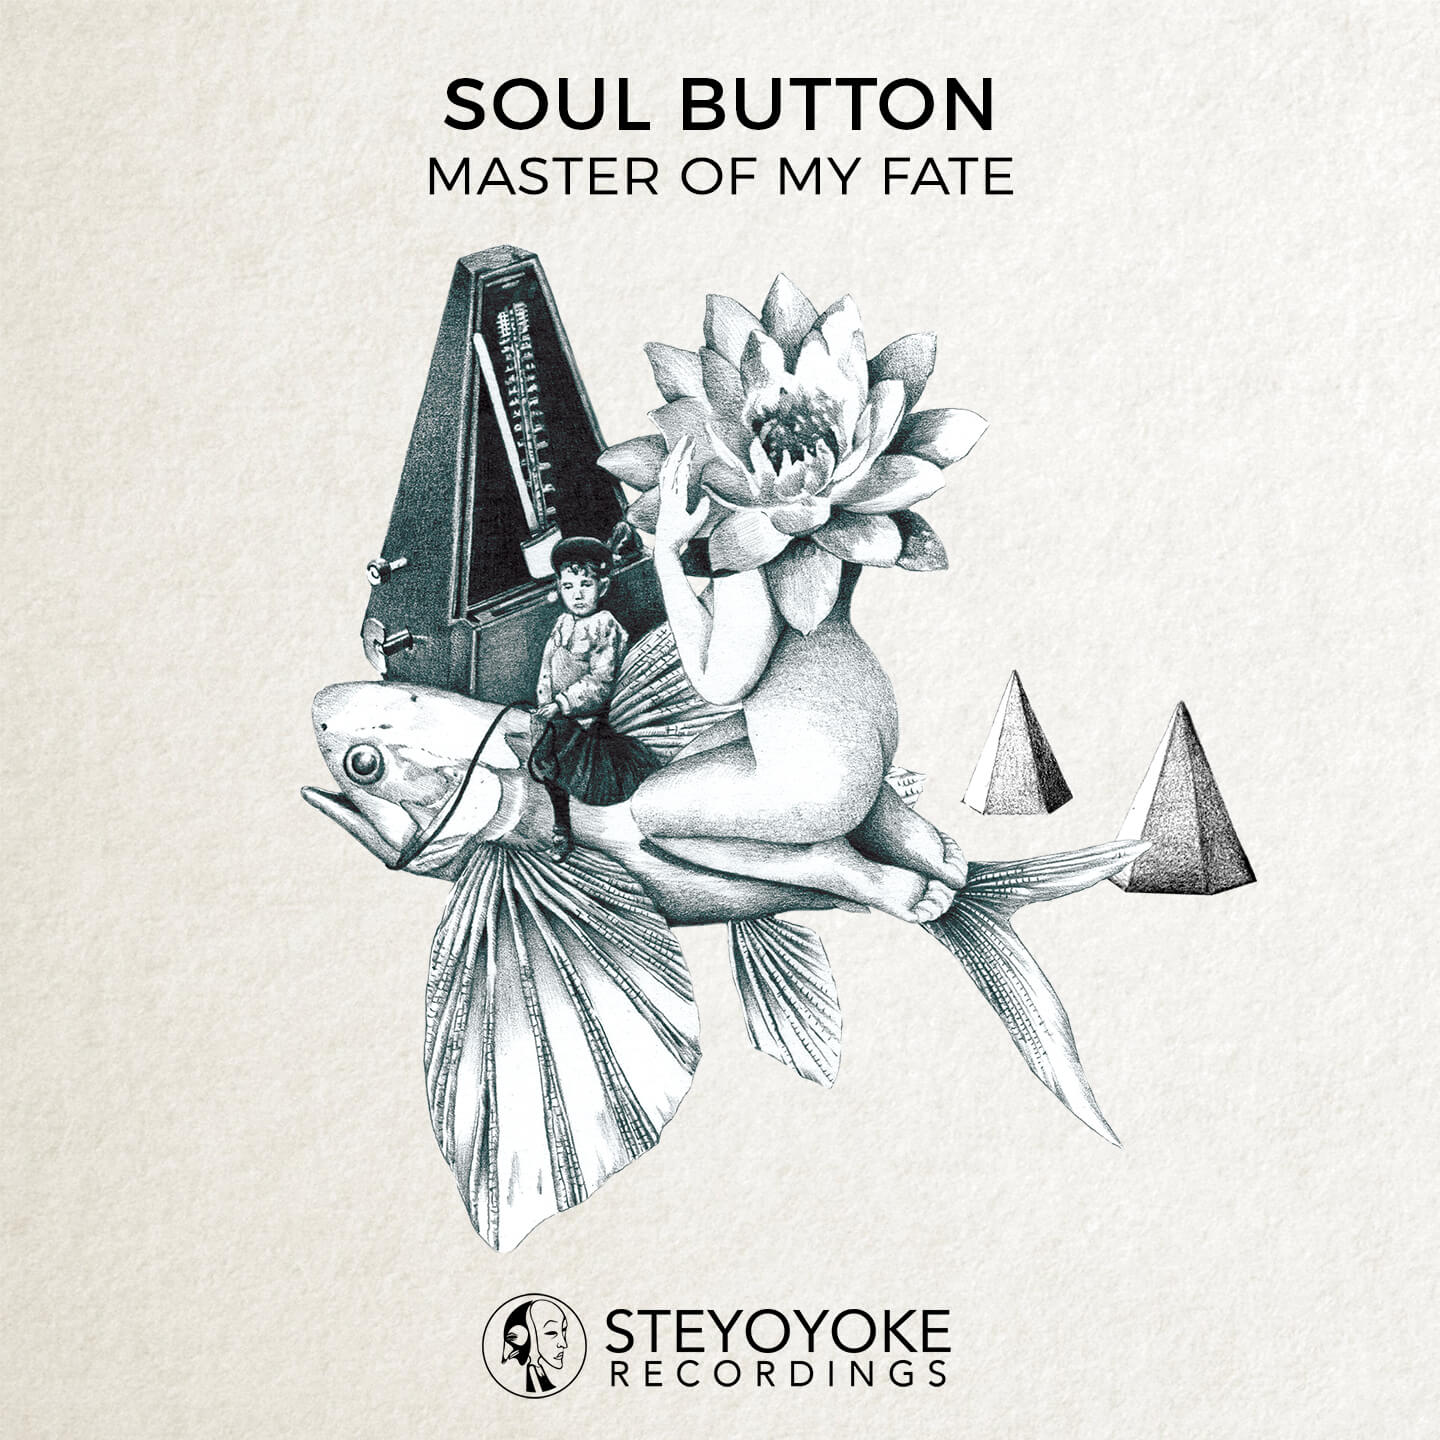 SYYK063 - Soul Button Master Of My Fate